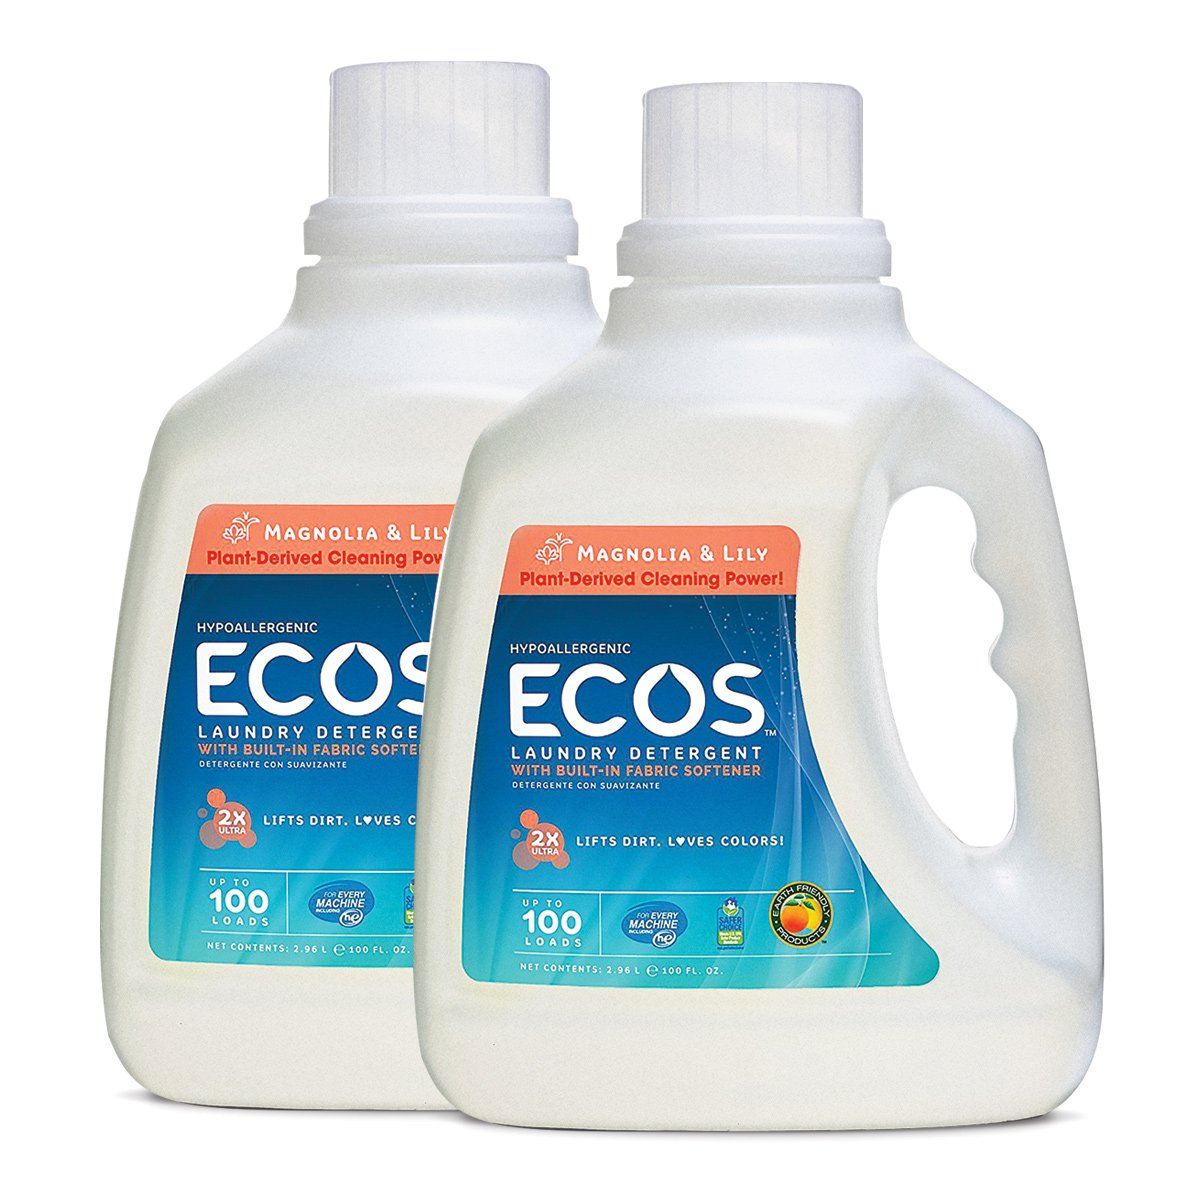 Earth Friendly Products ECOS 2X Liquid Laundry Detergent, Magnolia & Lily, 200 Loads, 100 FL OZ (Pack of 2) by ECOS